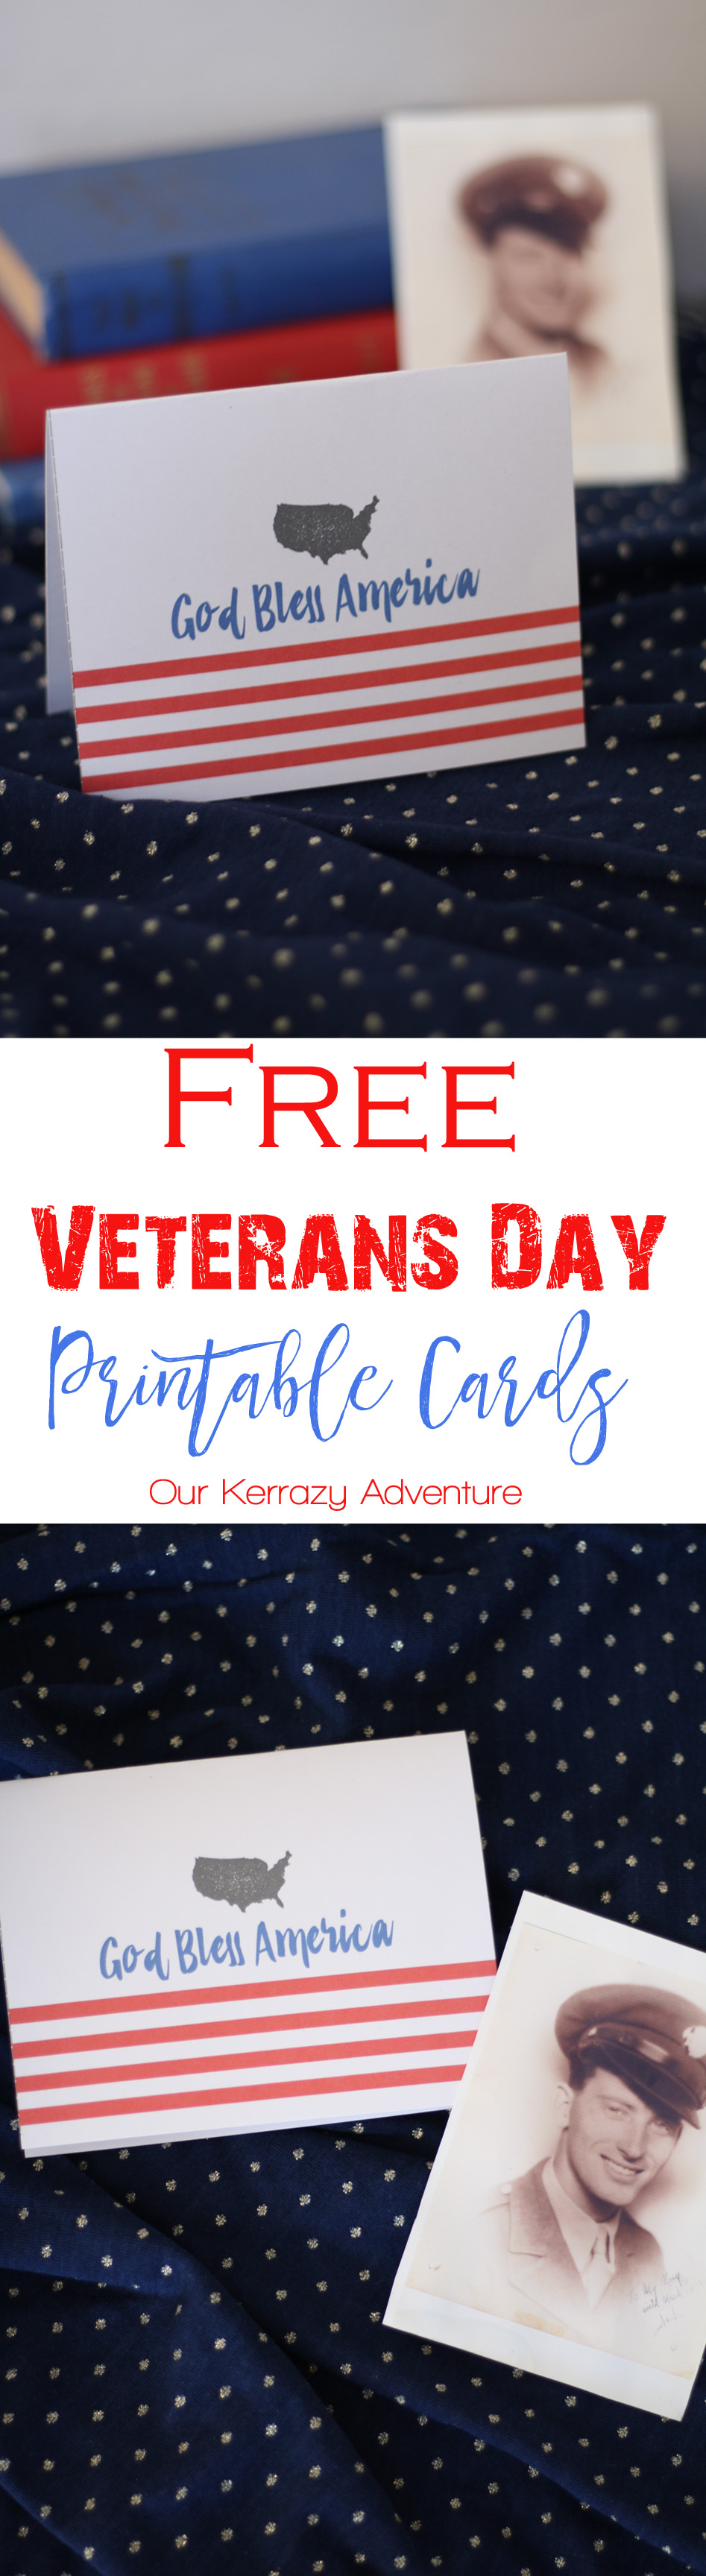 Free Veterans Day Card Printable - Our Kerrazy Adventure